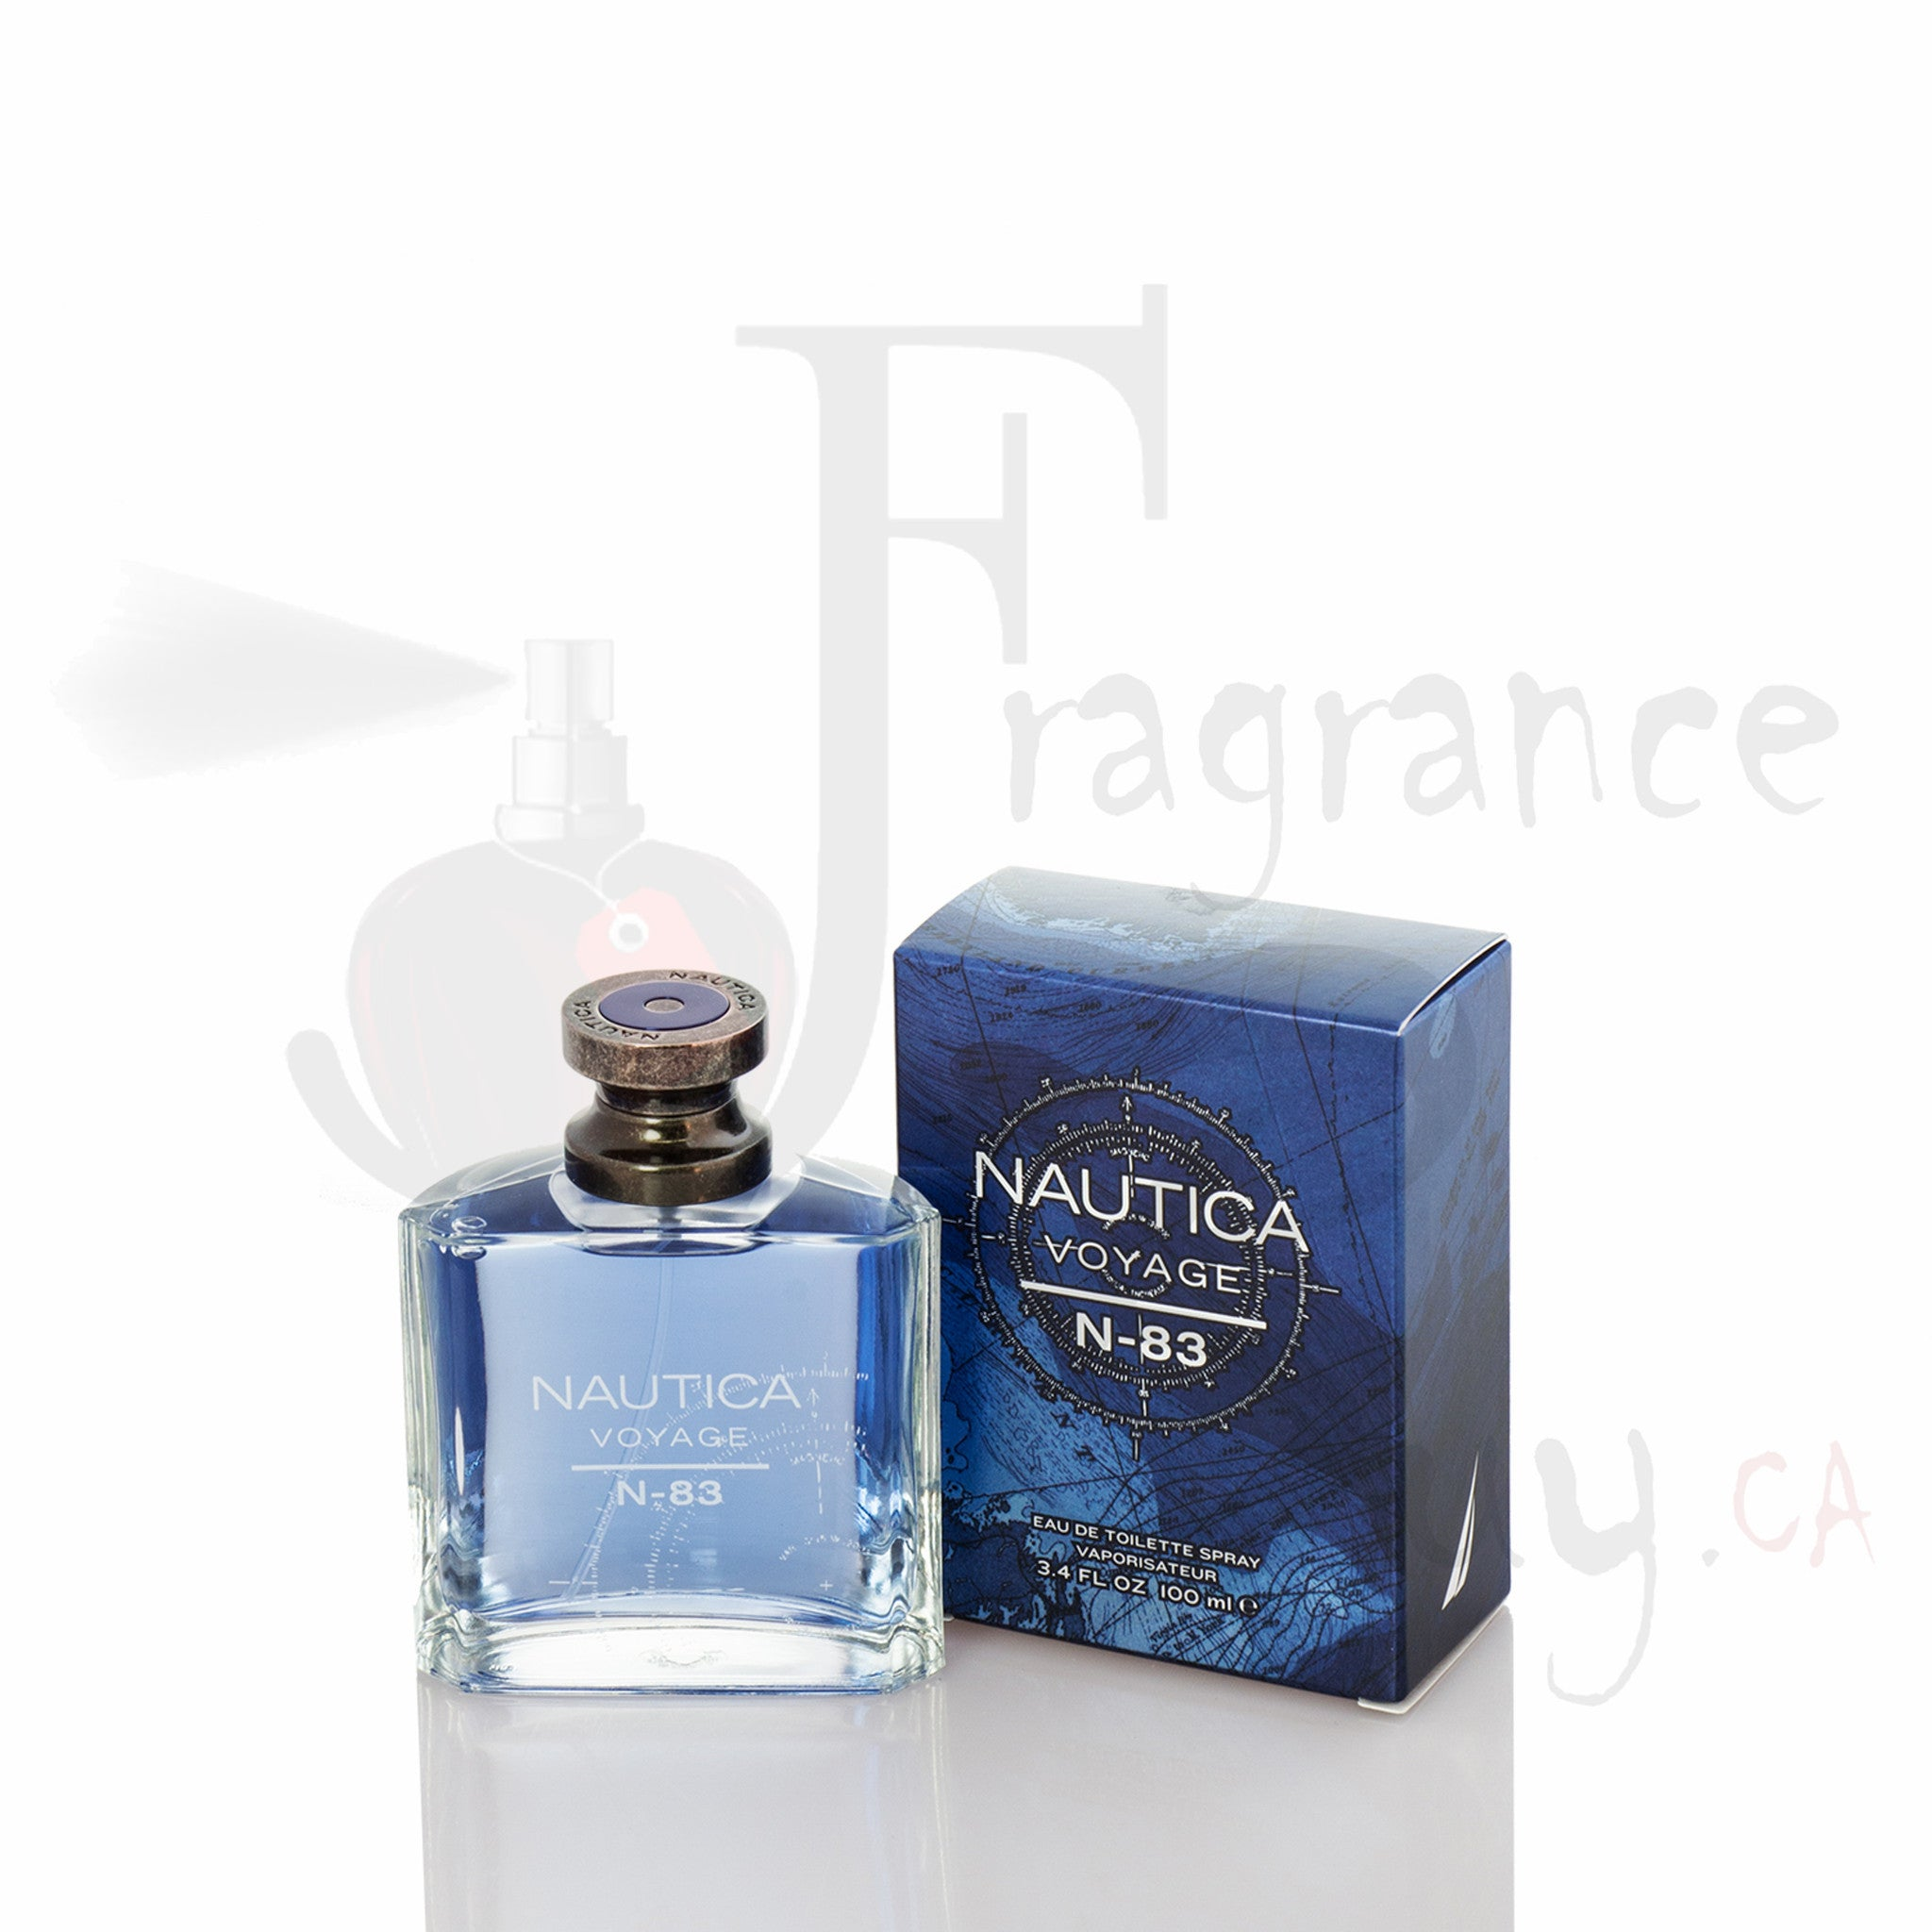 Nautica Voyage N-83 For Man